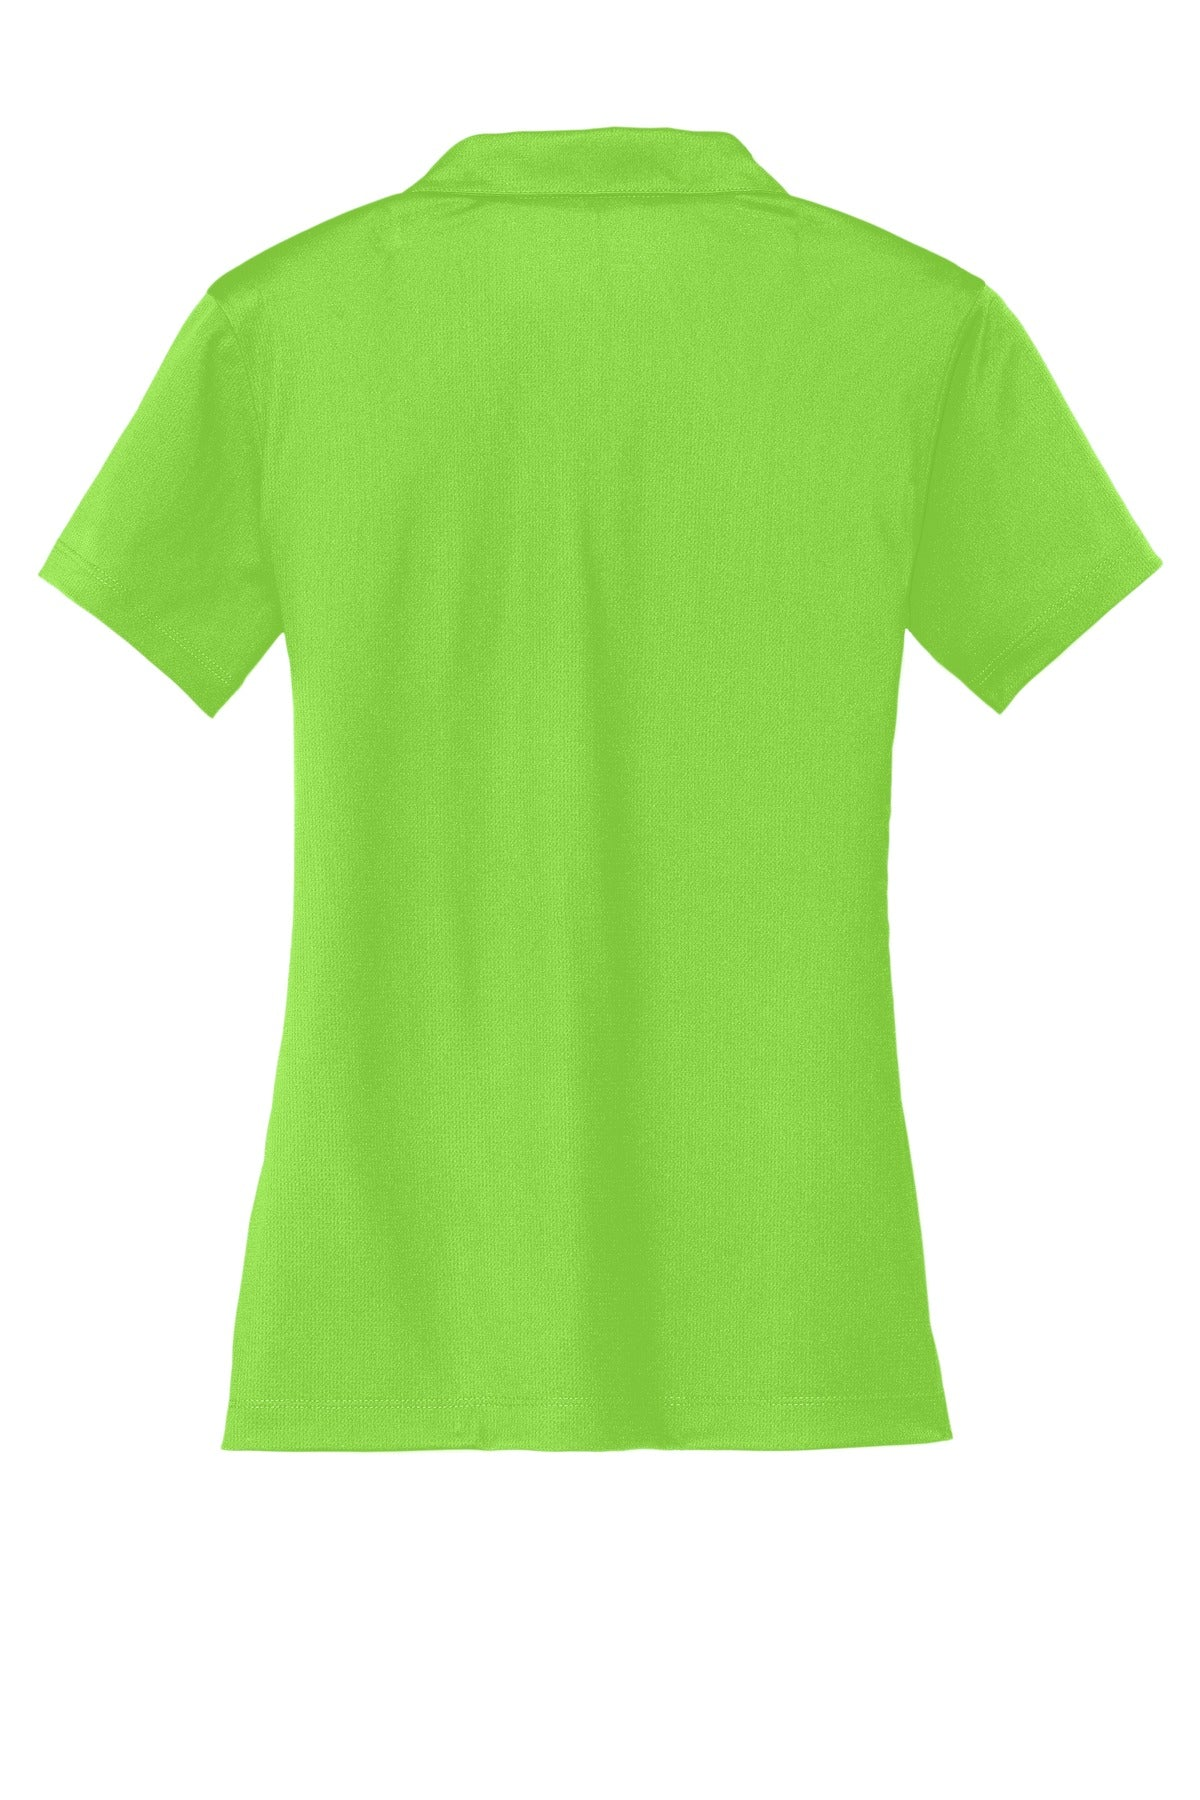 Action Green Nike Ladies Dri-FIT Vertical Mesh Polo.